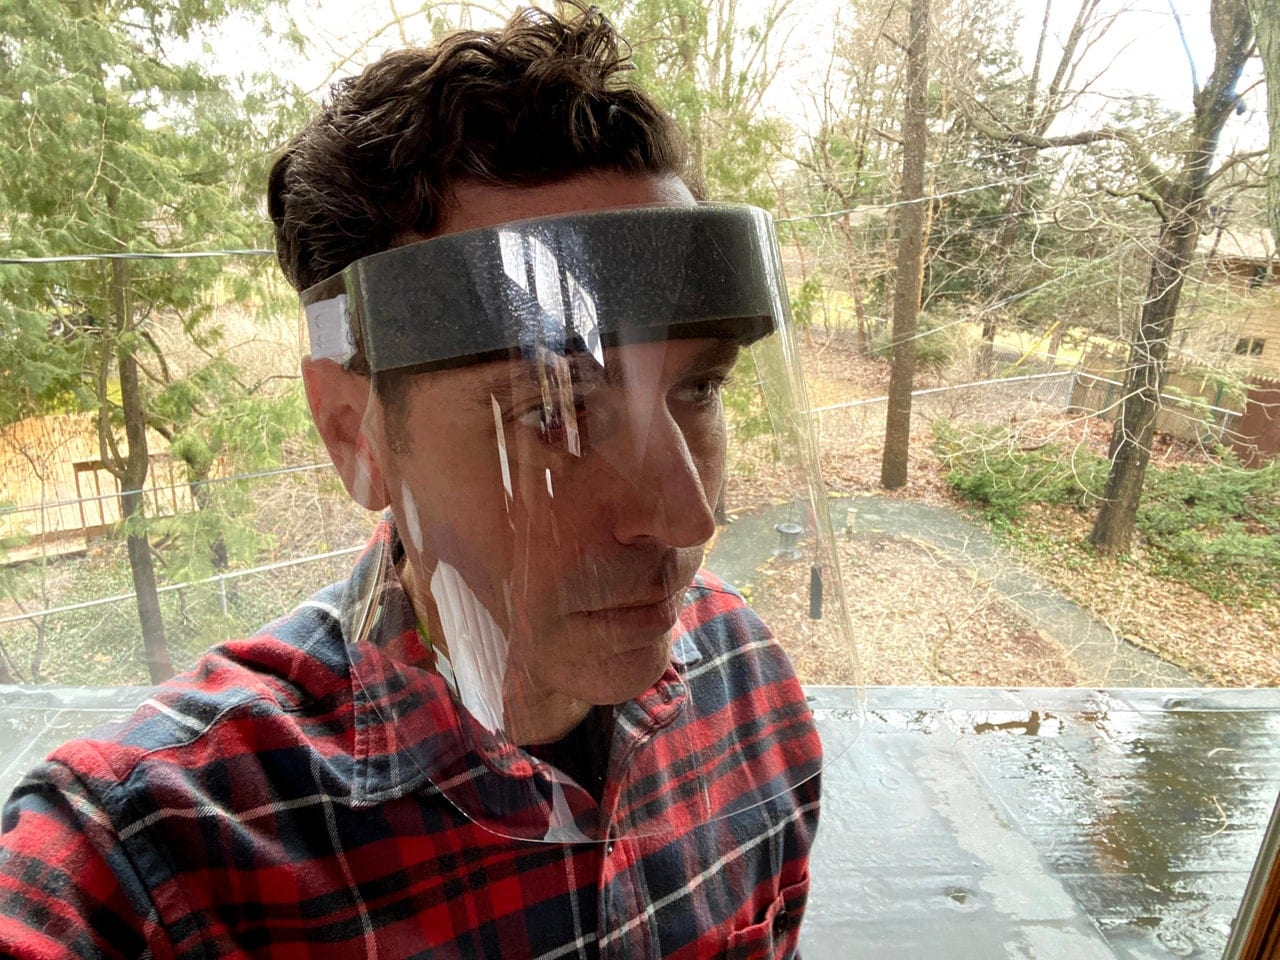 Jesse Darley, an engineer who worked on the face shield's open source design, models a prototype at his home. PHOTOGRAPH: JESSE DARLEY